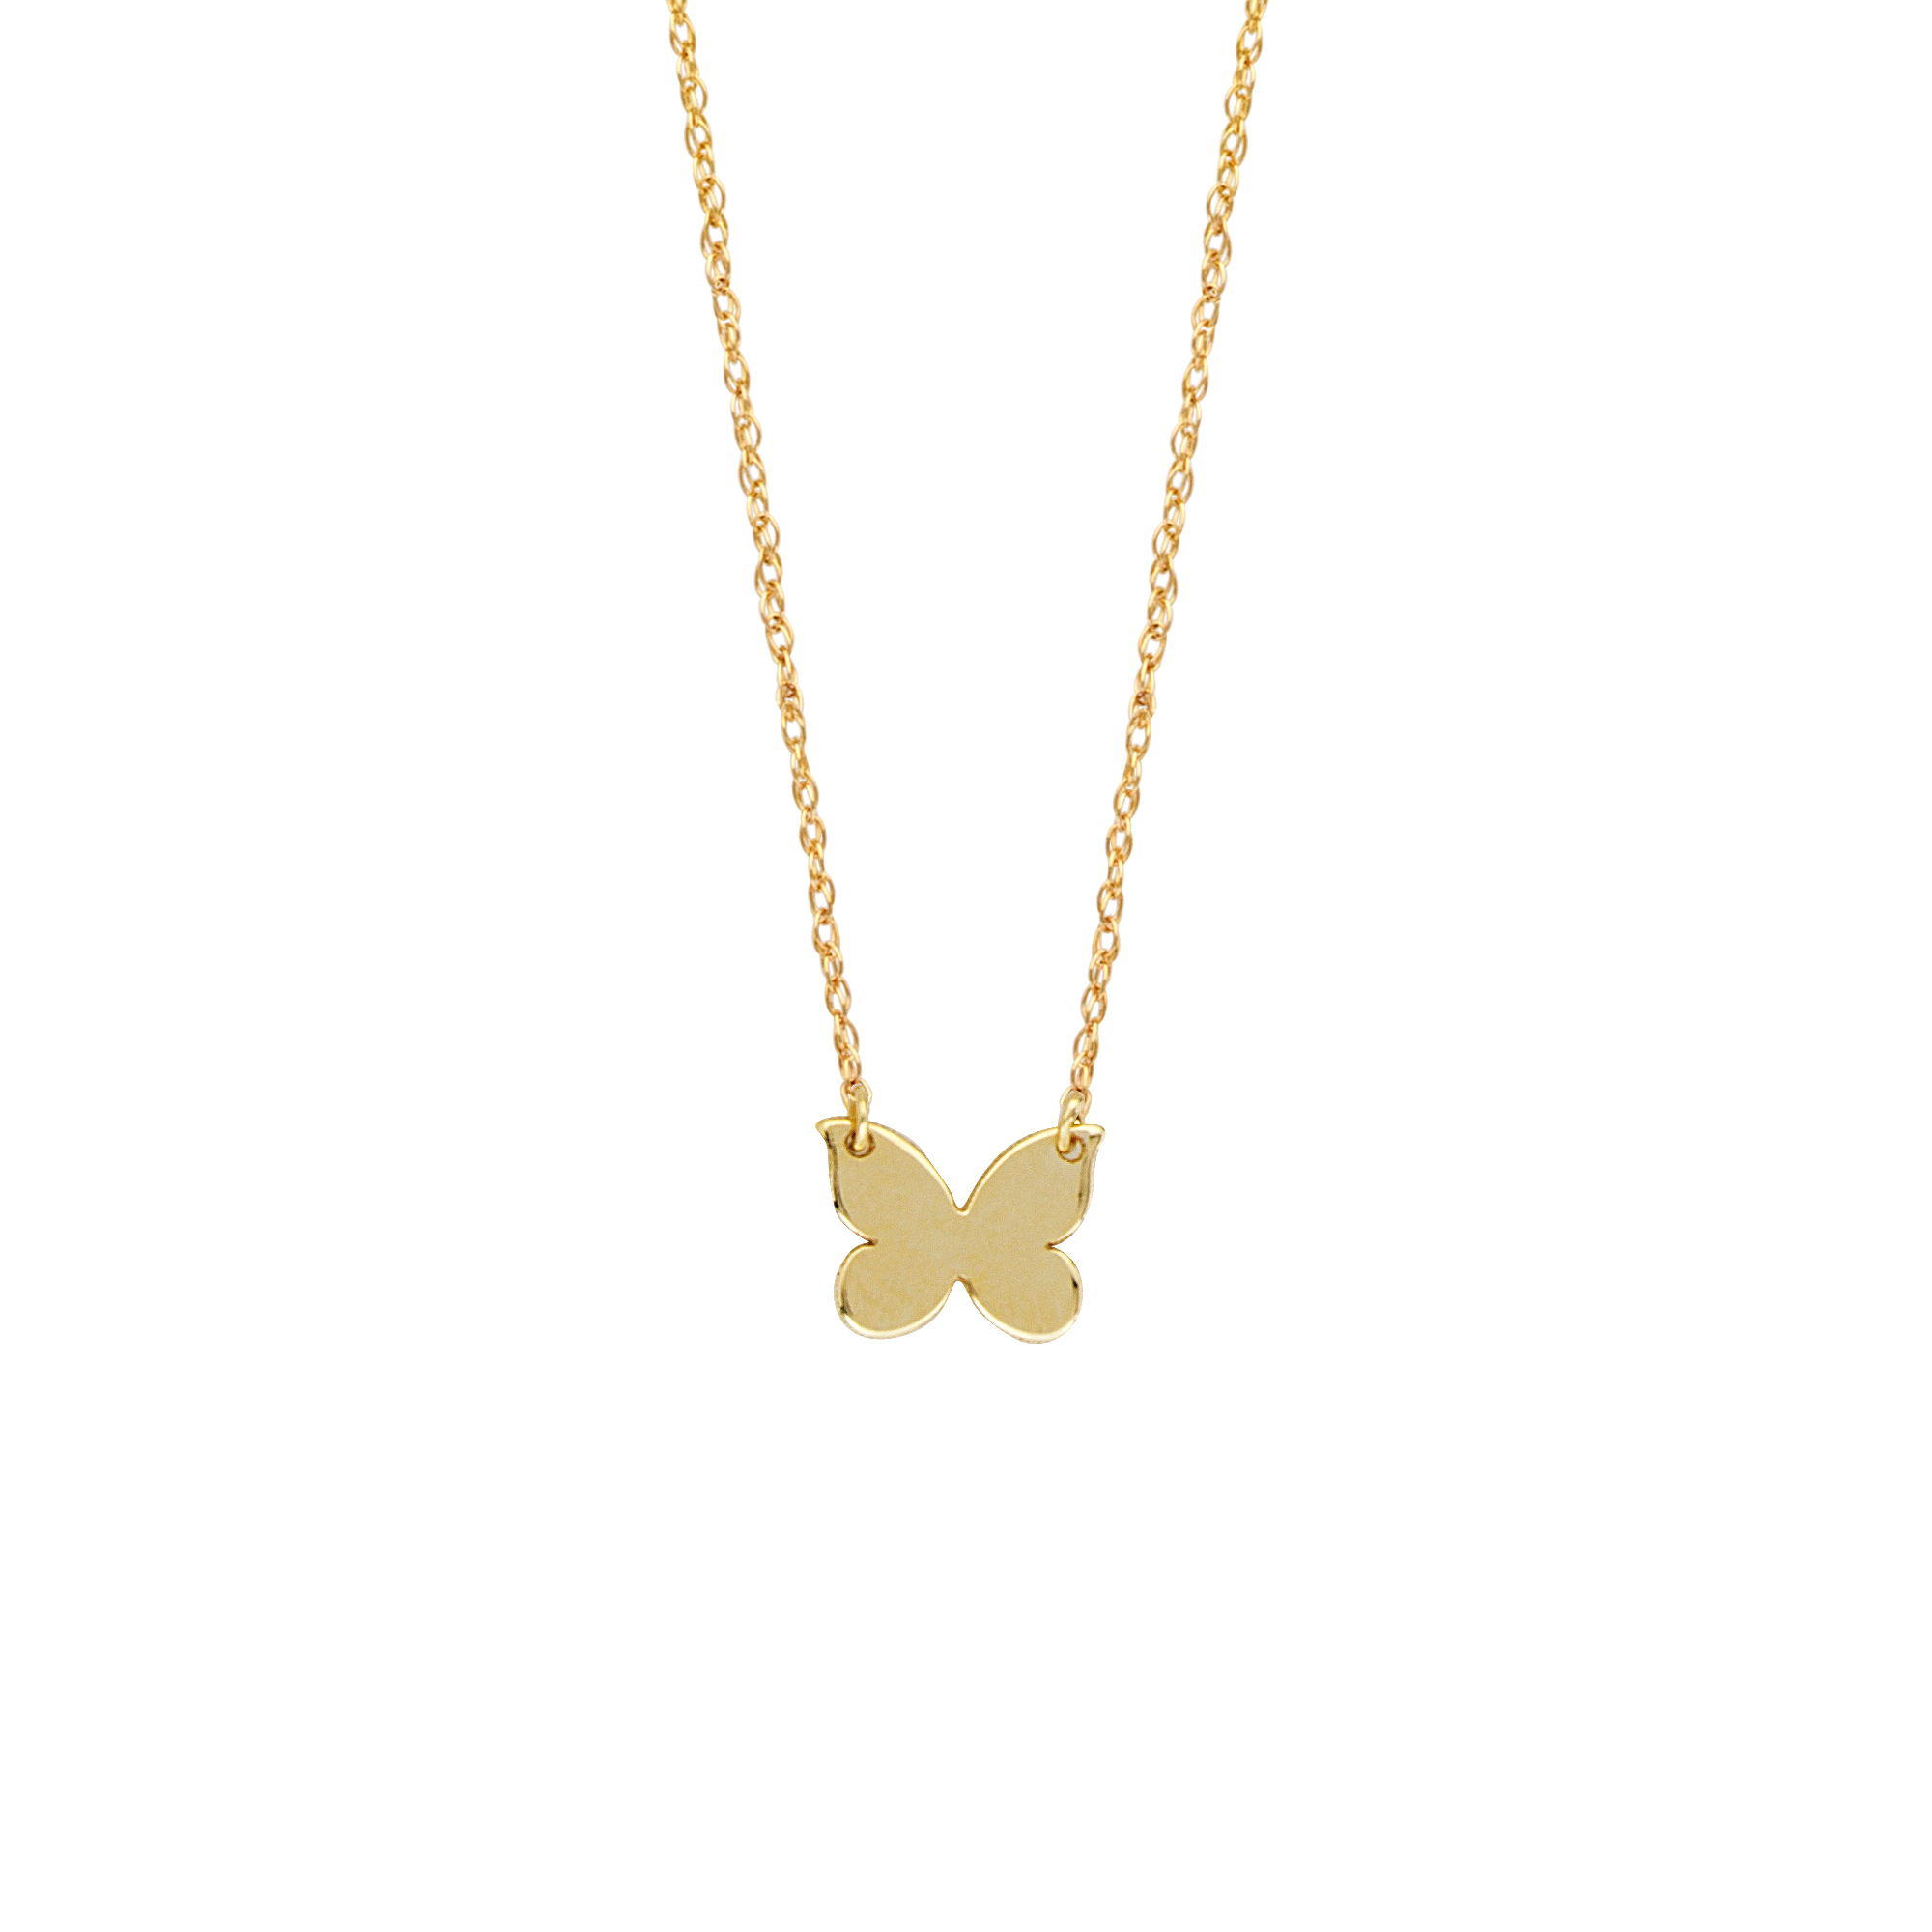 Butterfly Pendant, 14Kt Gold Butterfly Necklace 18